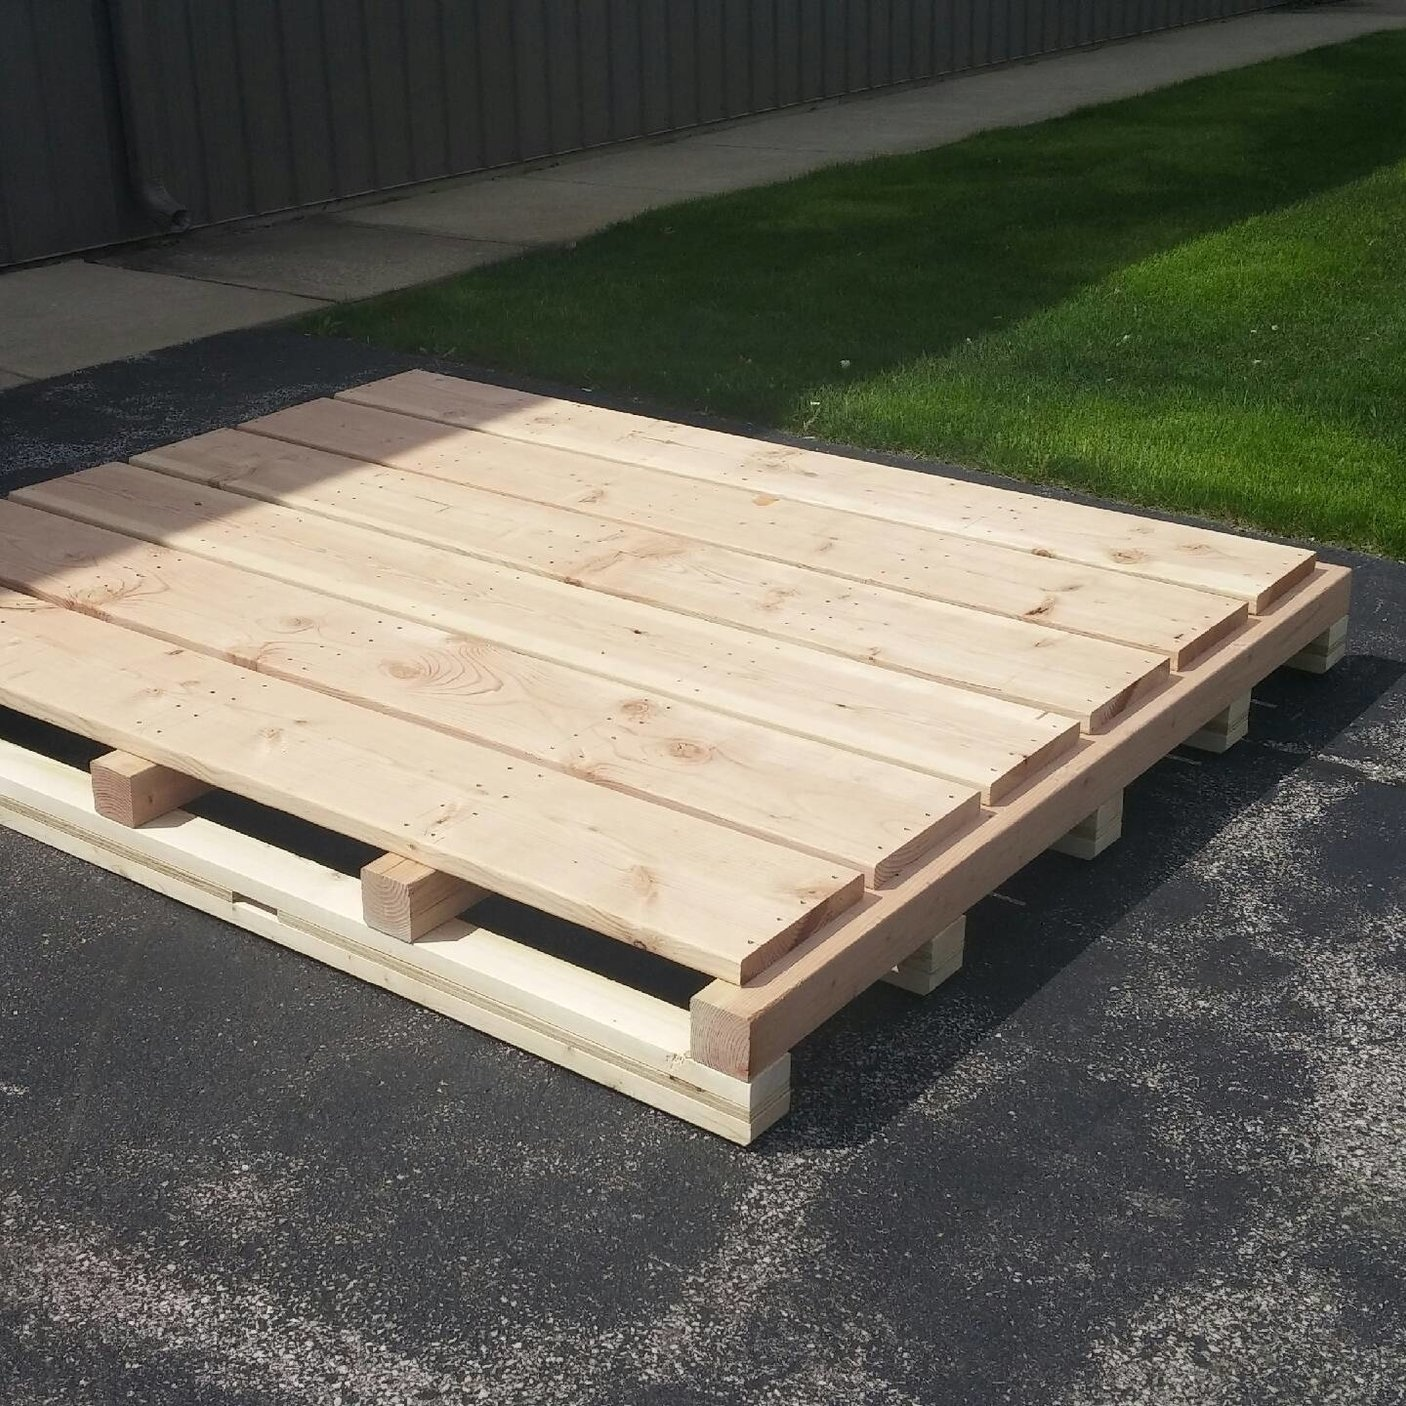 custom Pallets | Custom Skids - Heavy duty, non-standard, wooden pallets and wood skids for any sized job. Domestic or certified for international shipping, (ISPM-15 compliant).If it looks like a grocery store pallet, we don't build it. If it's heavy duty, big or special, we can certainly help you!